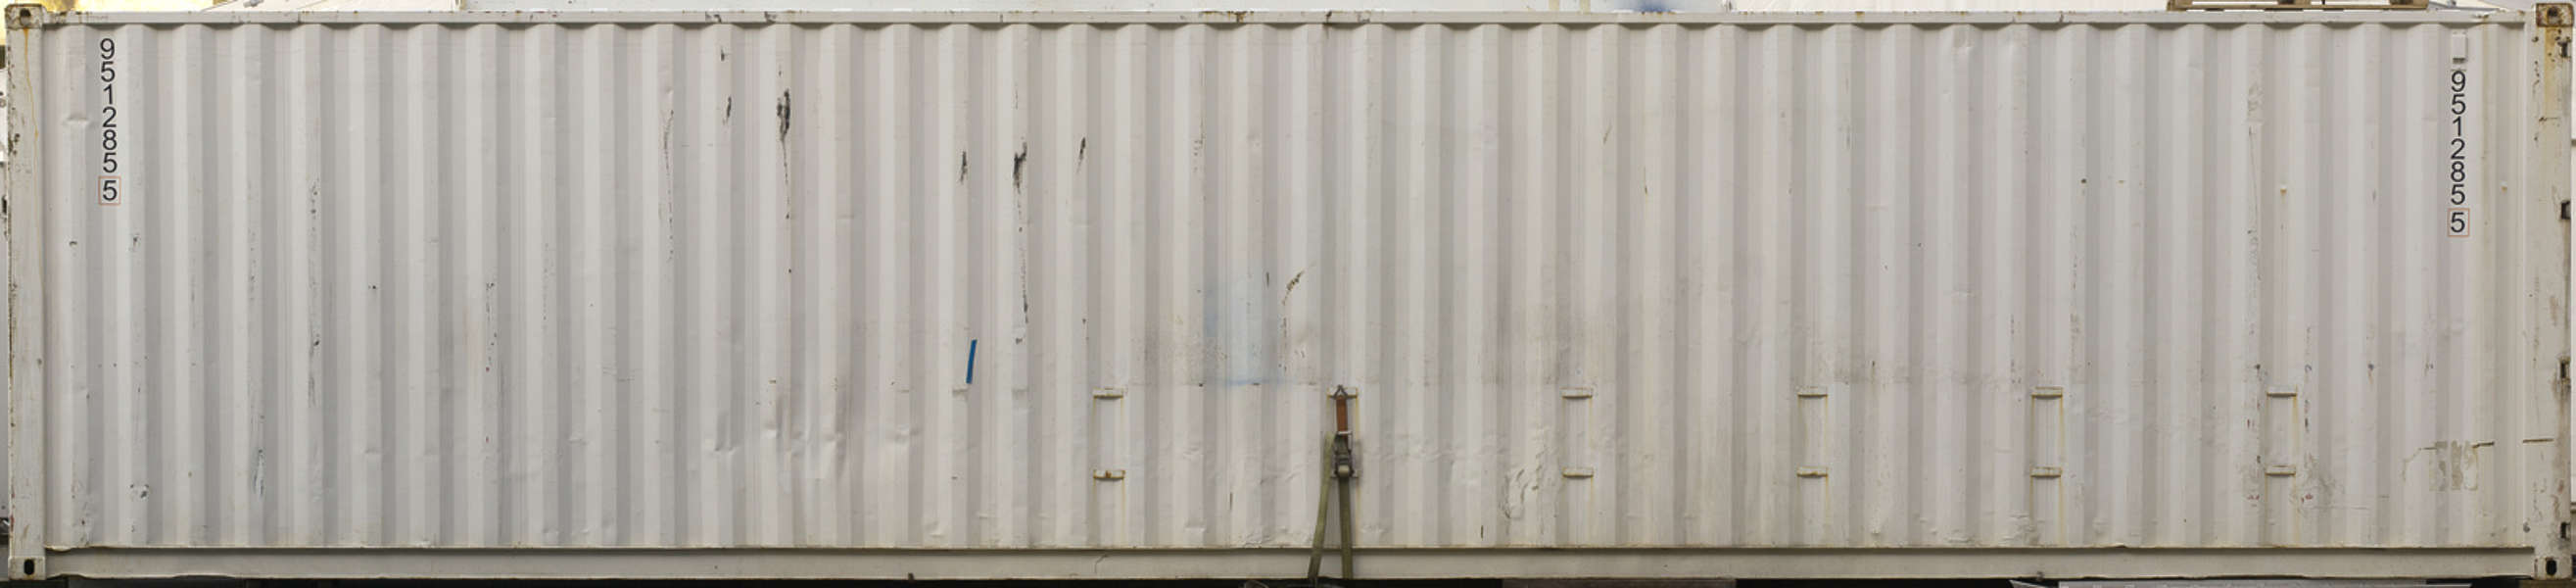 Metalcontainers0167